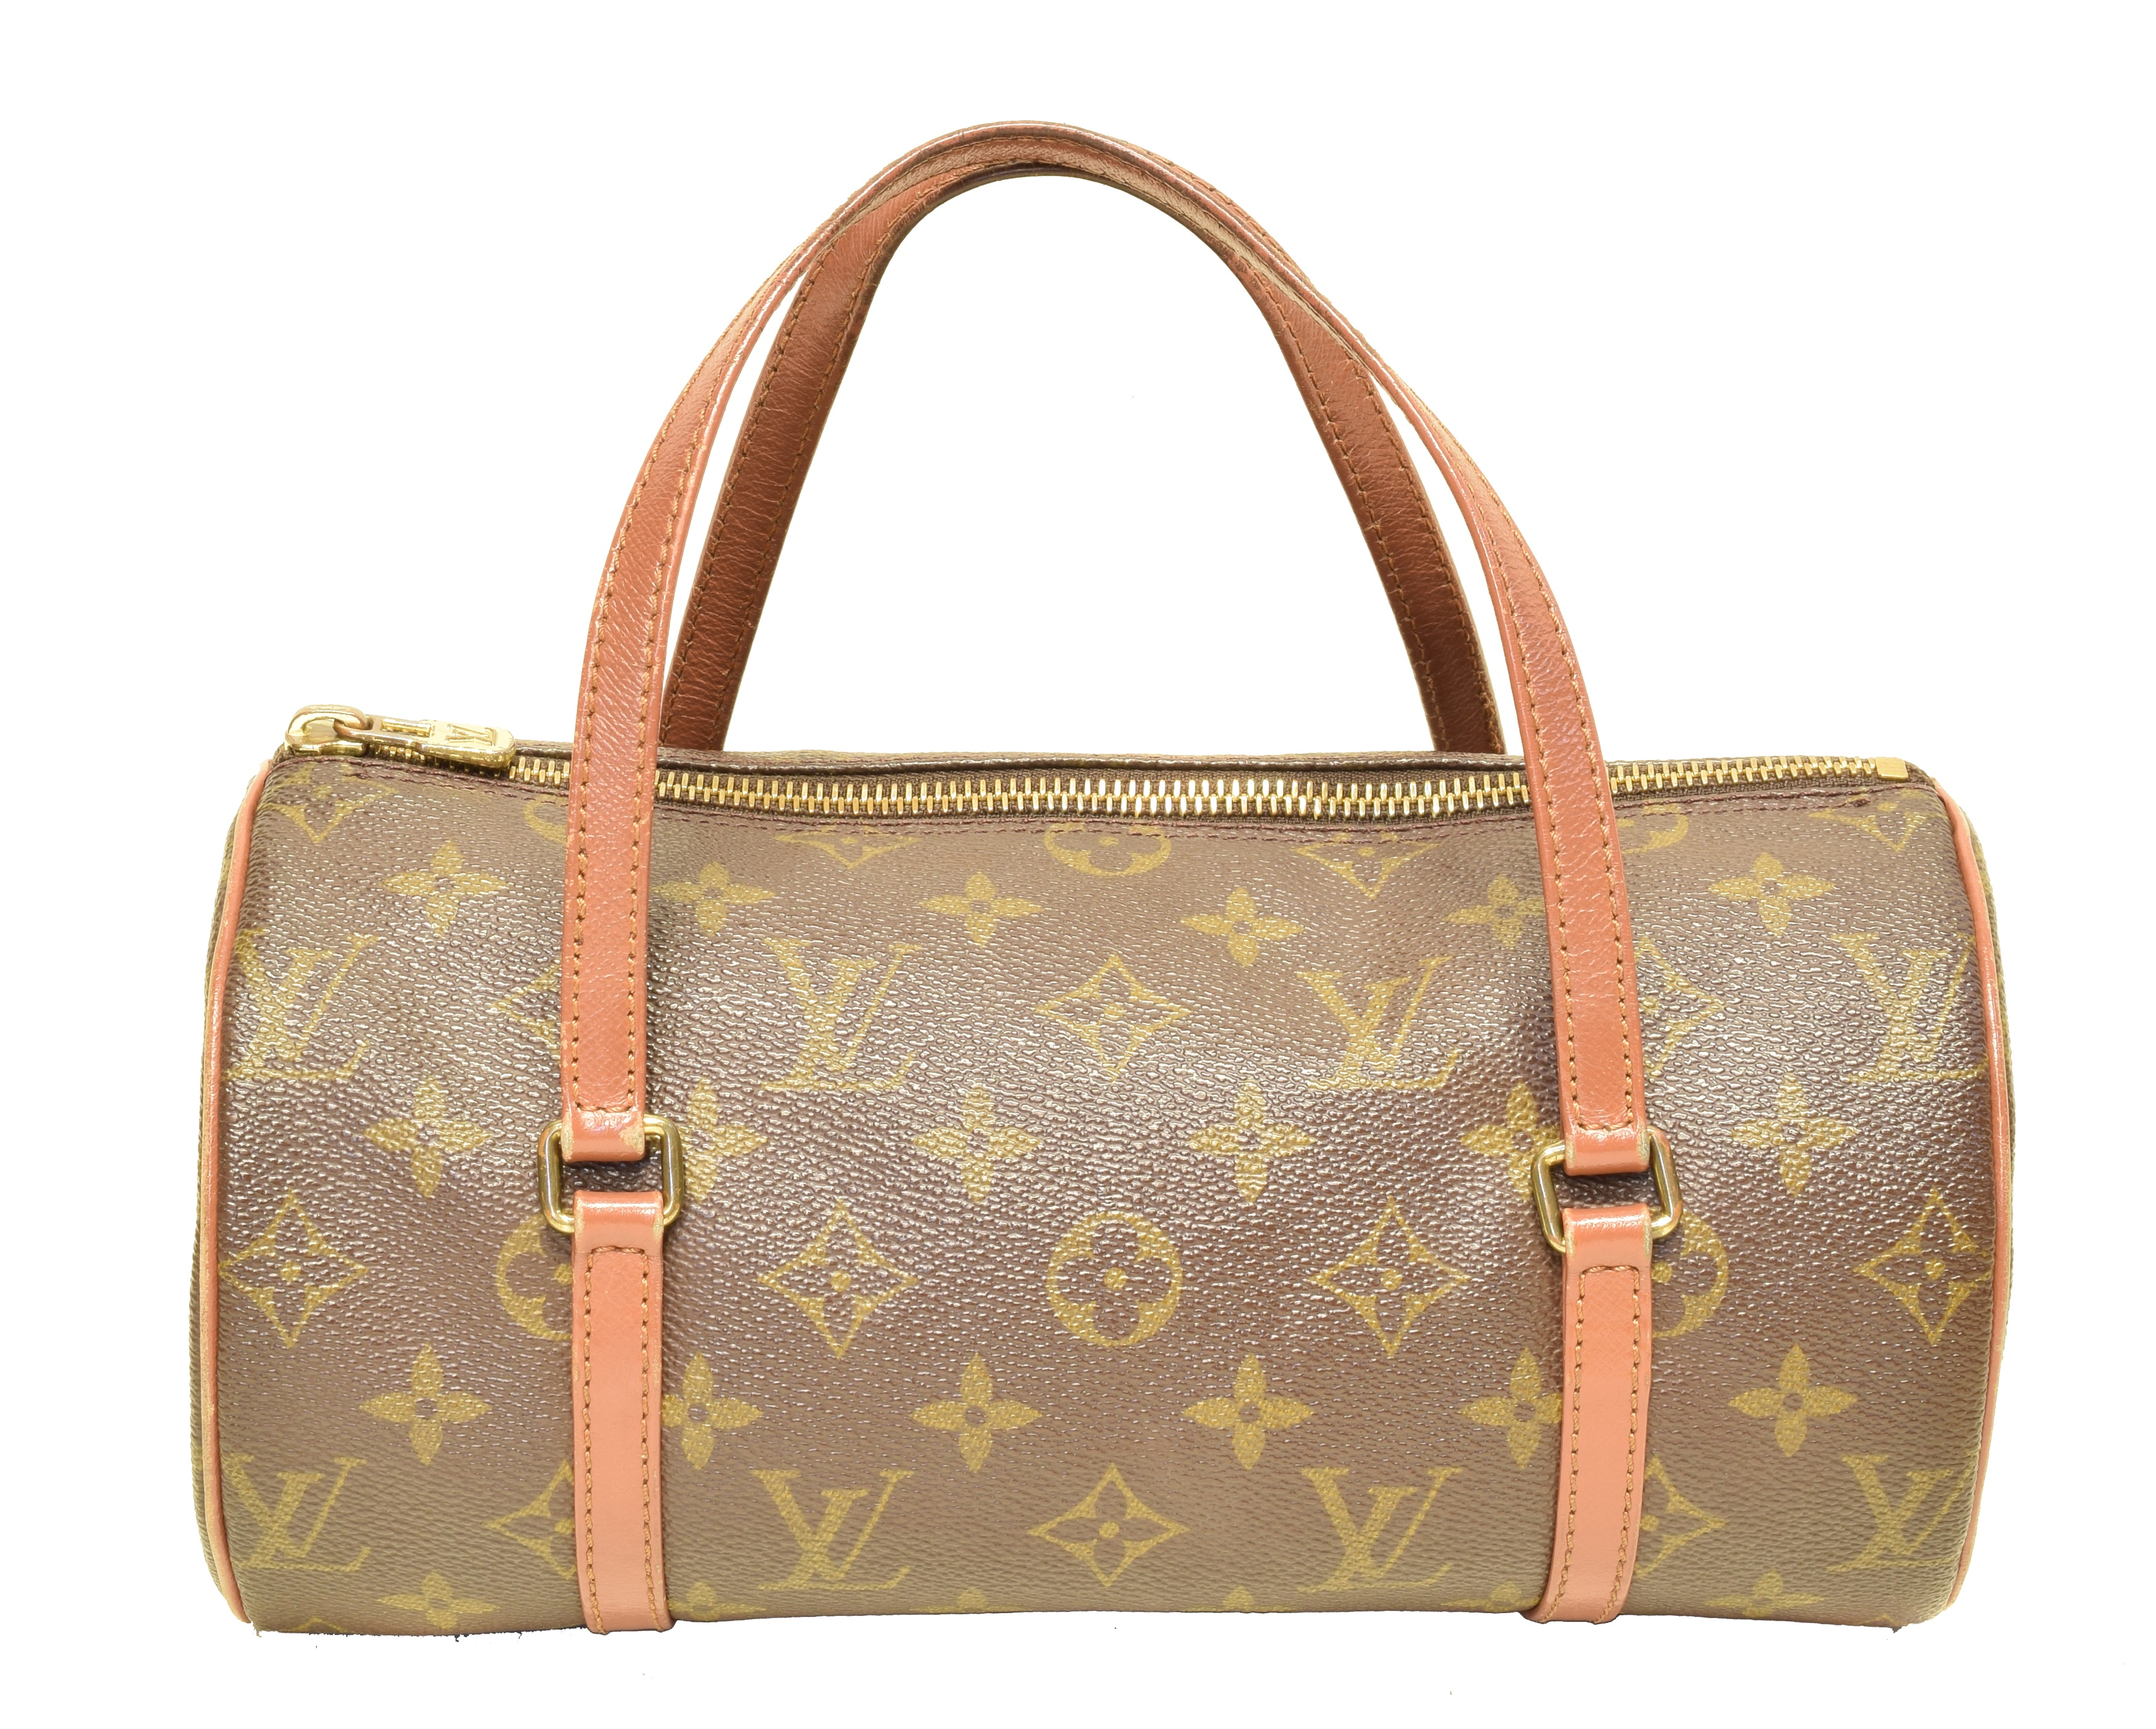 A Louis Vuitton Monogram Papillon 26 handbag, - Image 2 of 6